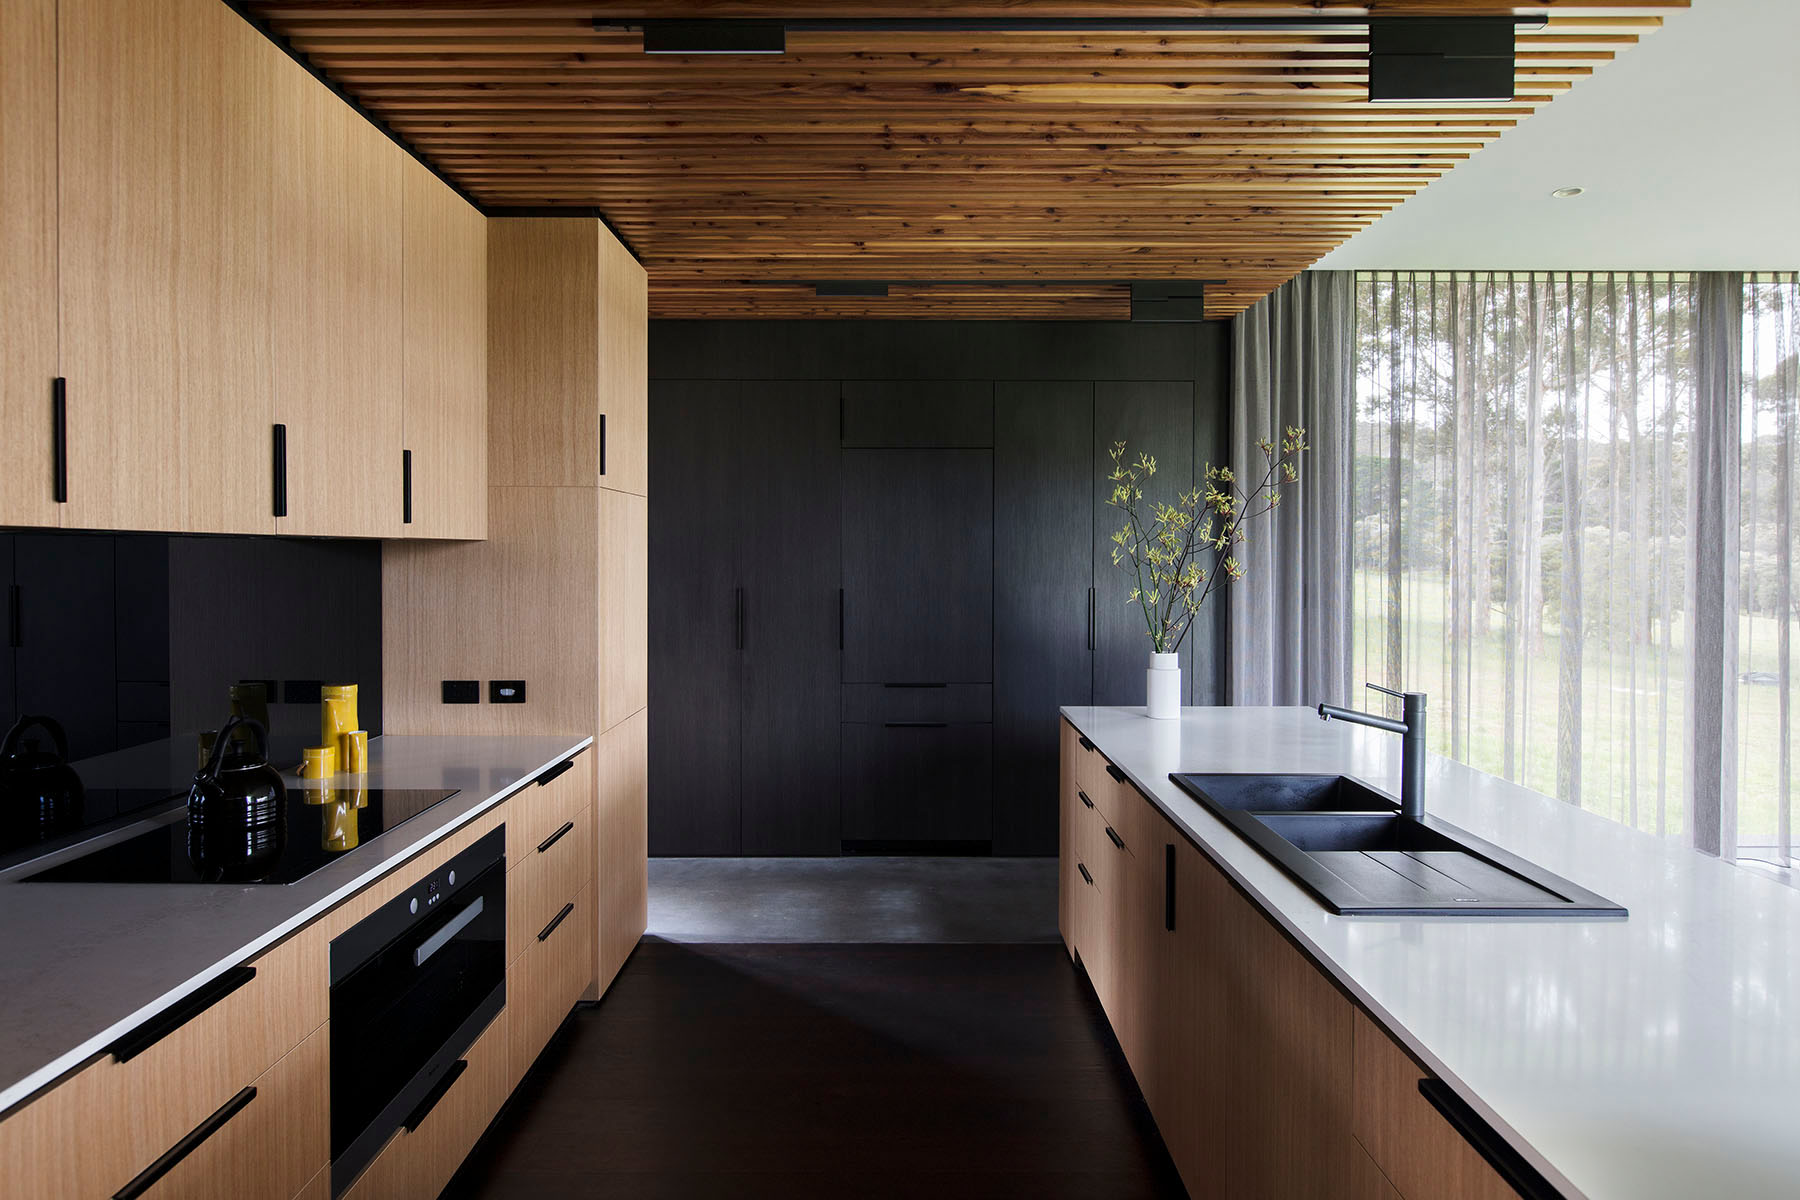 kitchen showing light timber cabinetry and timber battoned ceiling